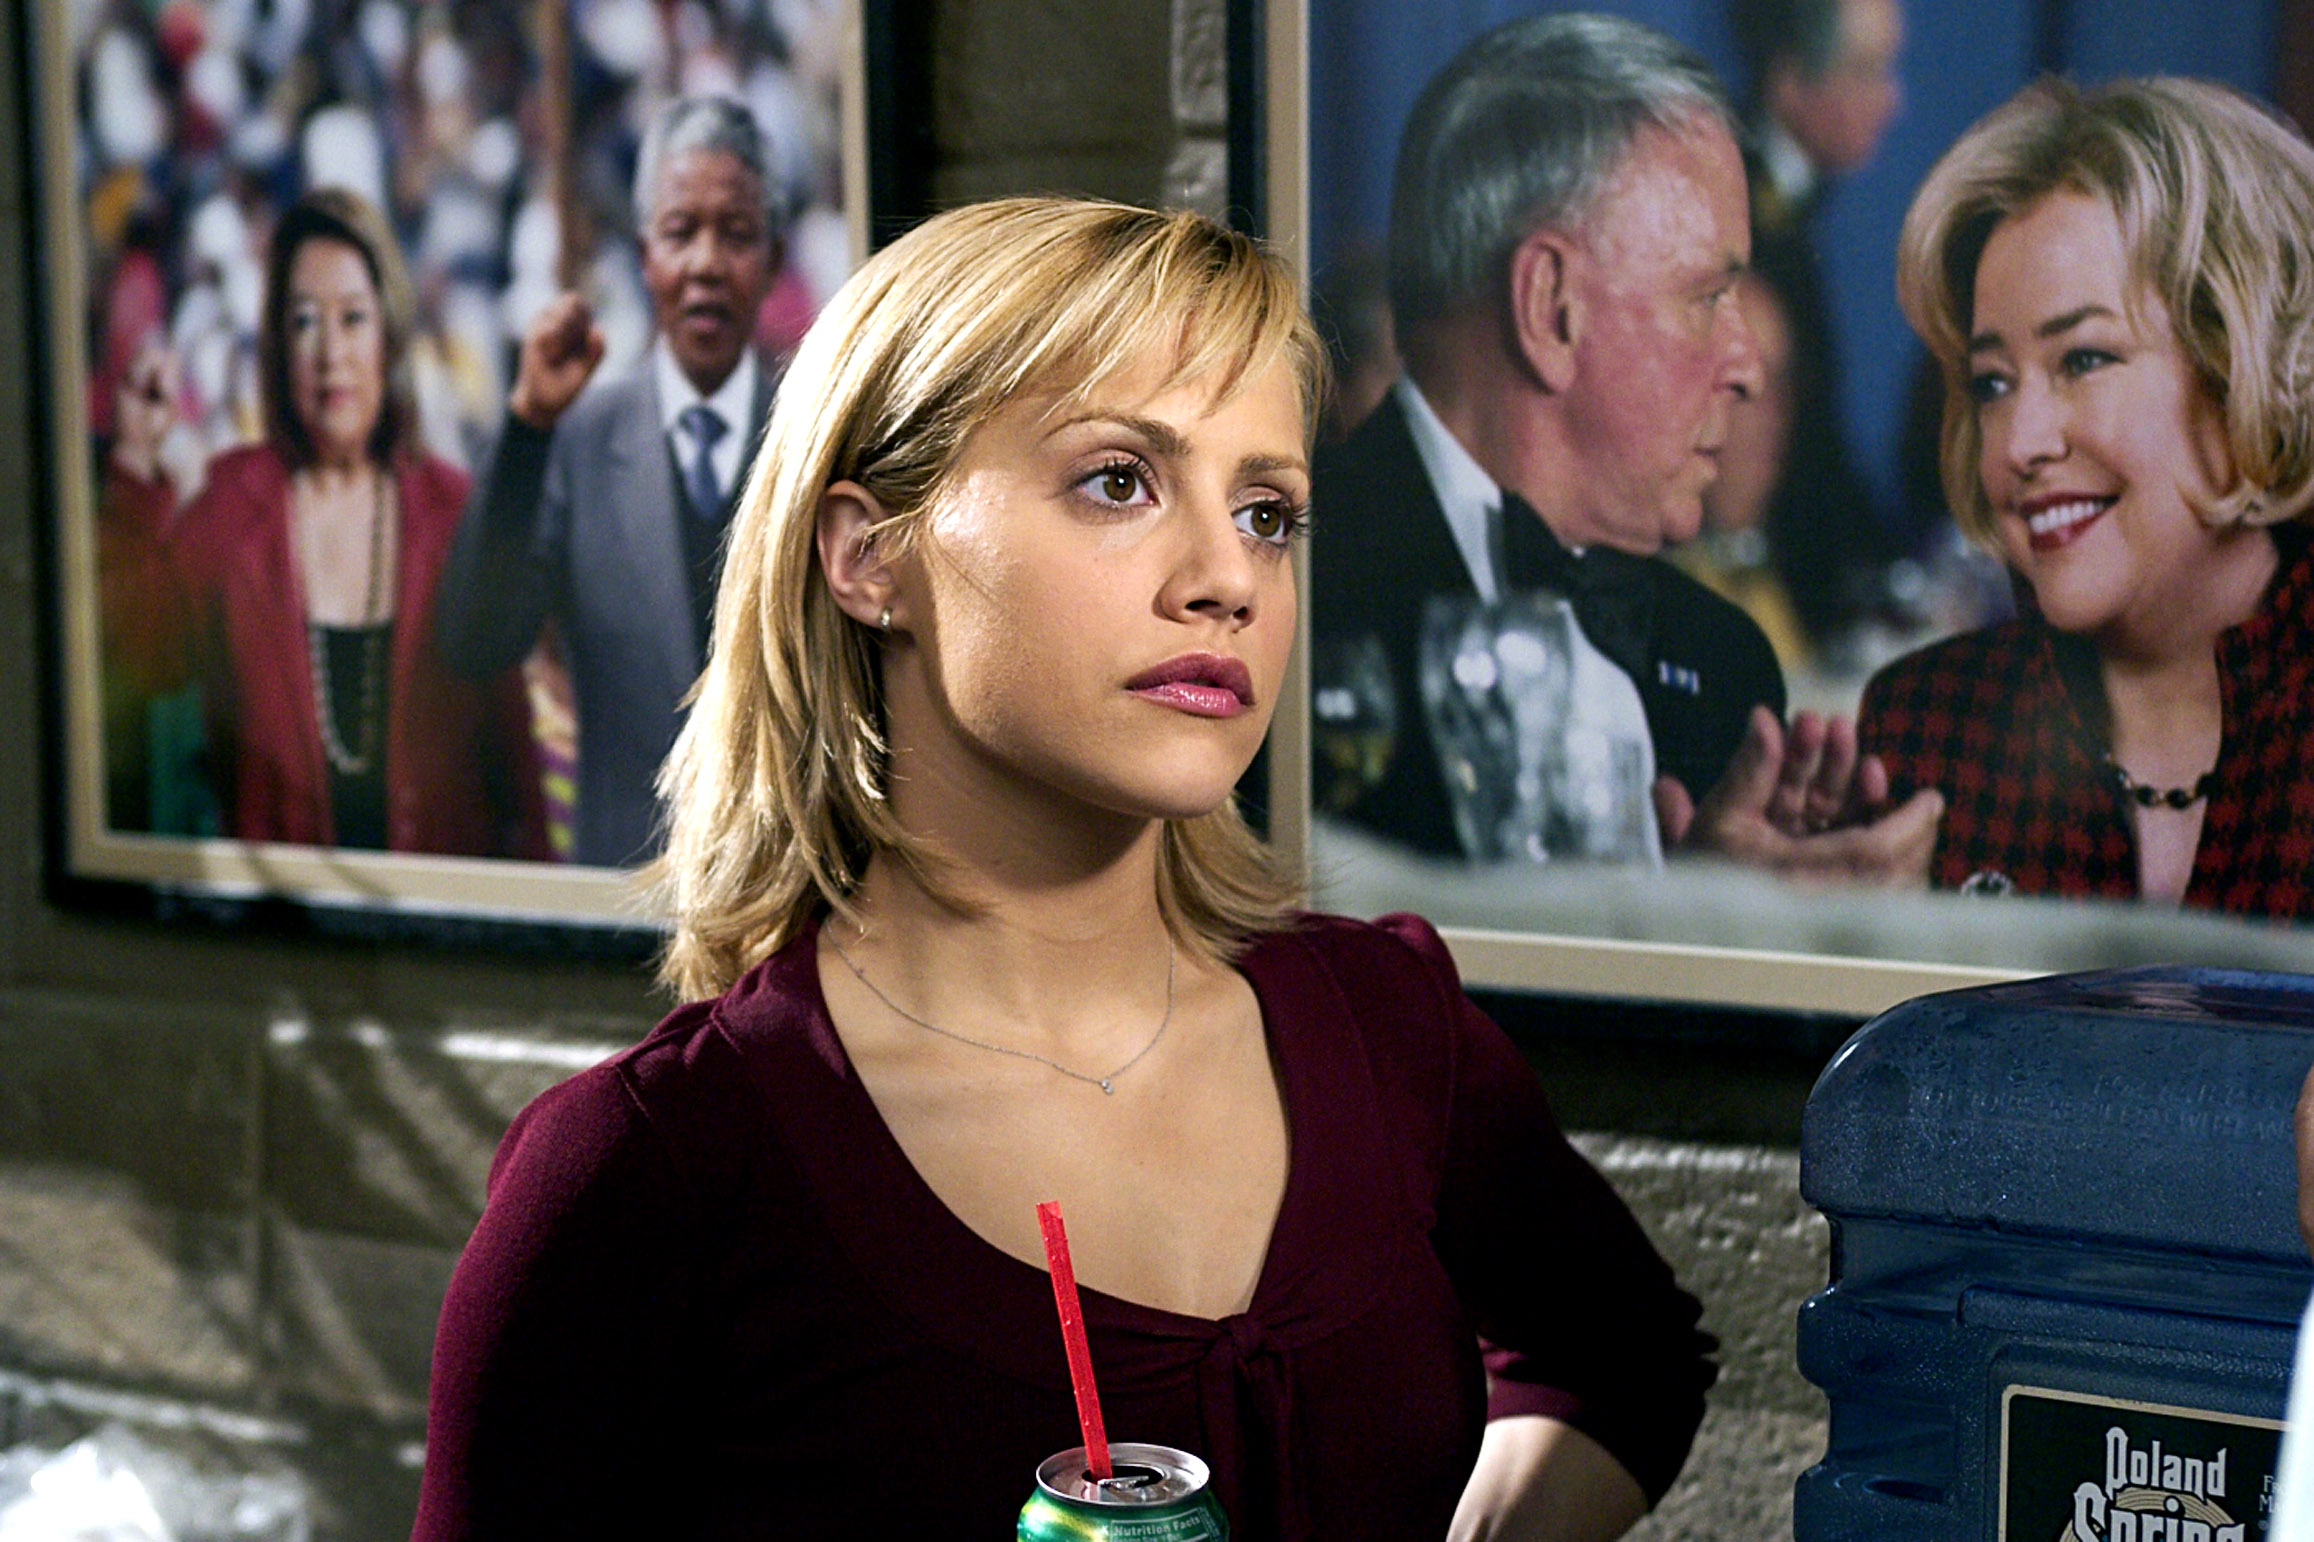 Brittany Murphy's Life and Death to Be Explored in Two-Part HBO Max Documentary